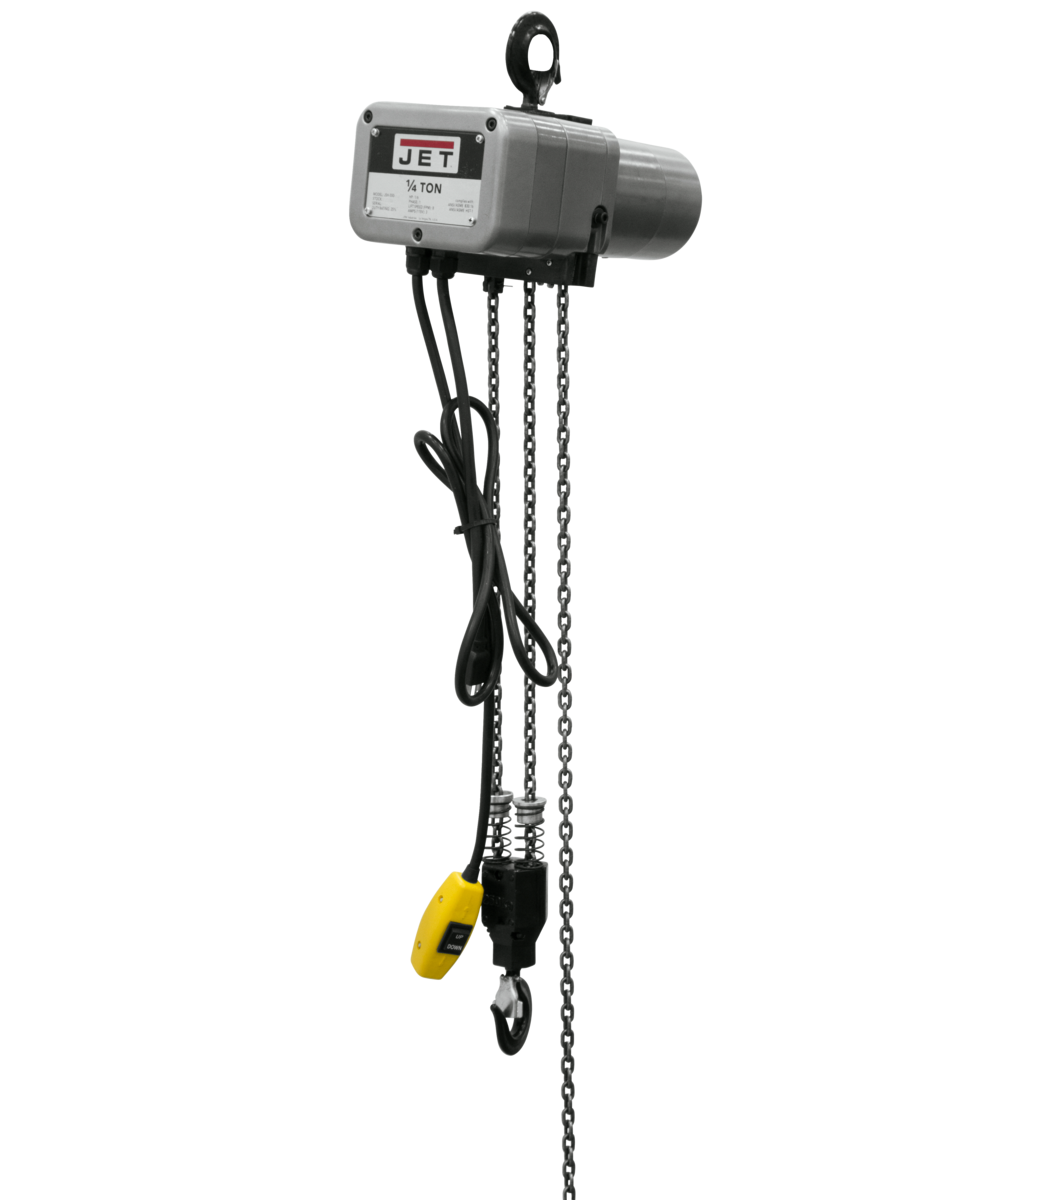 JSH-550-10 1/4-Ton Electric Chain Hoist 1-Phase 10' Lift